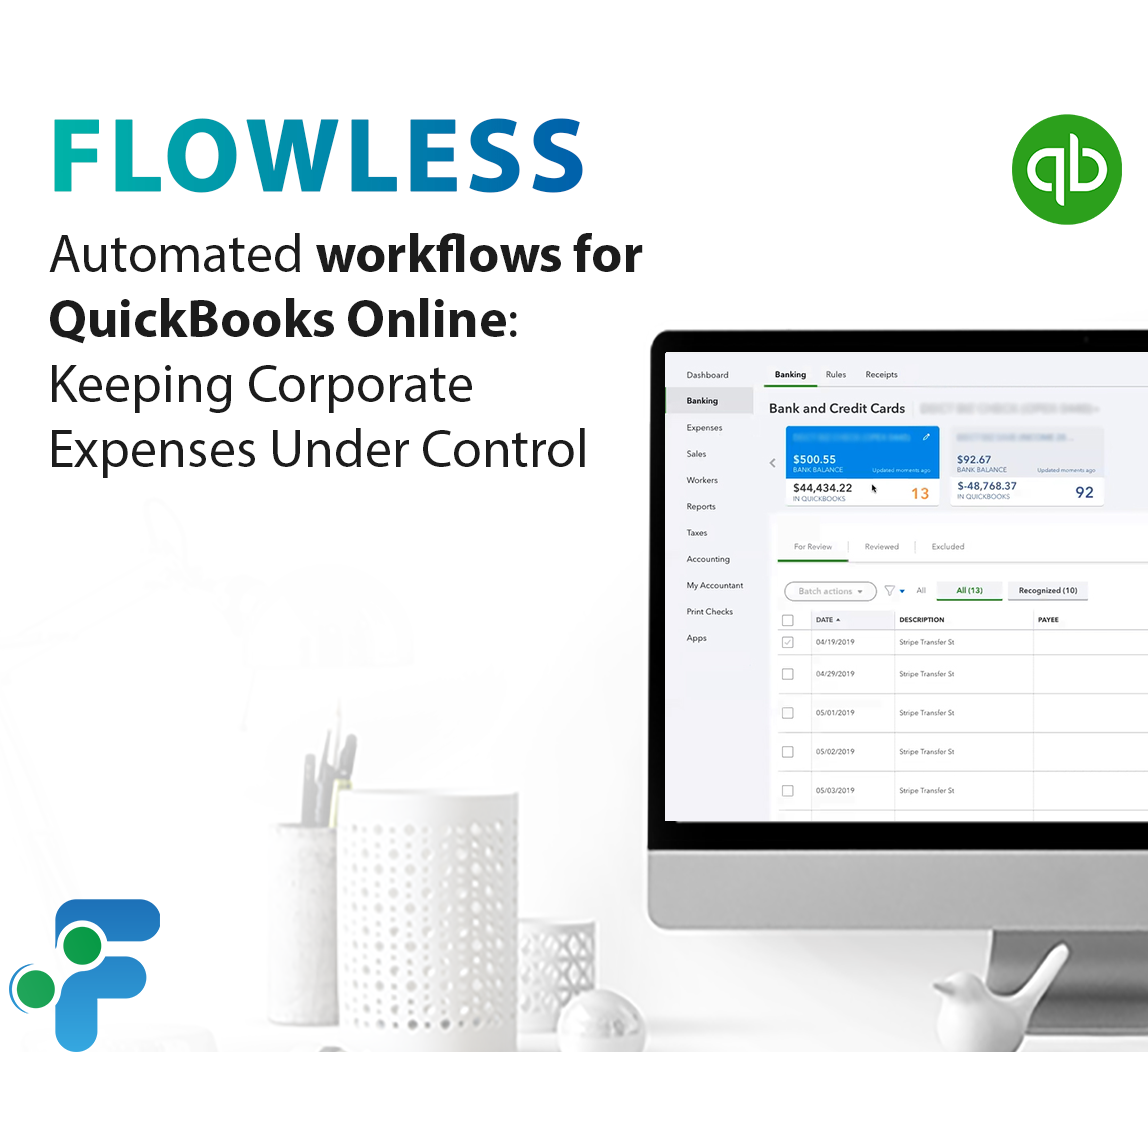 Automated workflows for QuickBooks Online